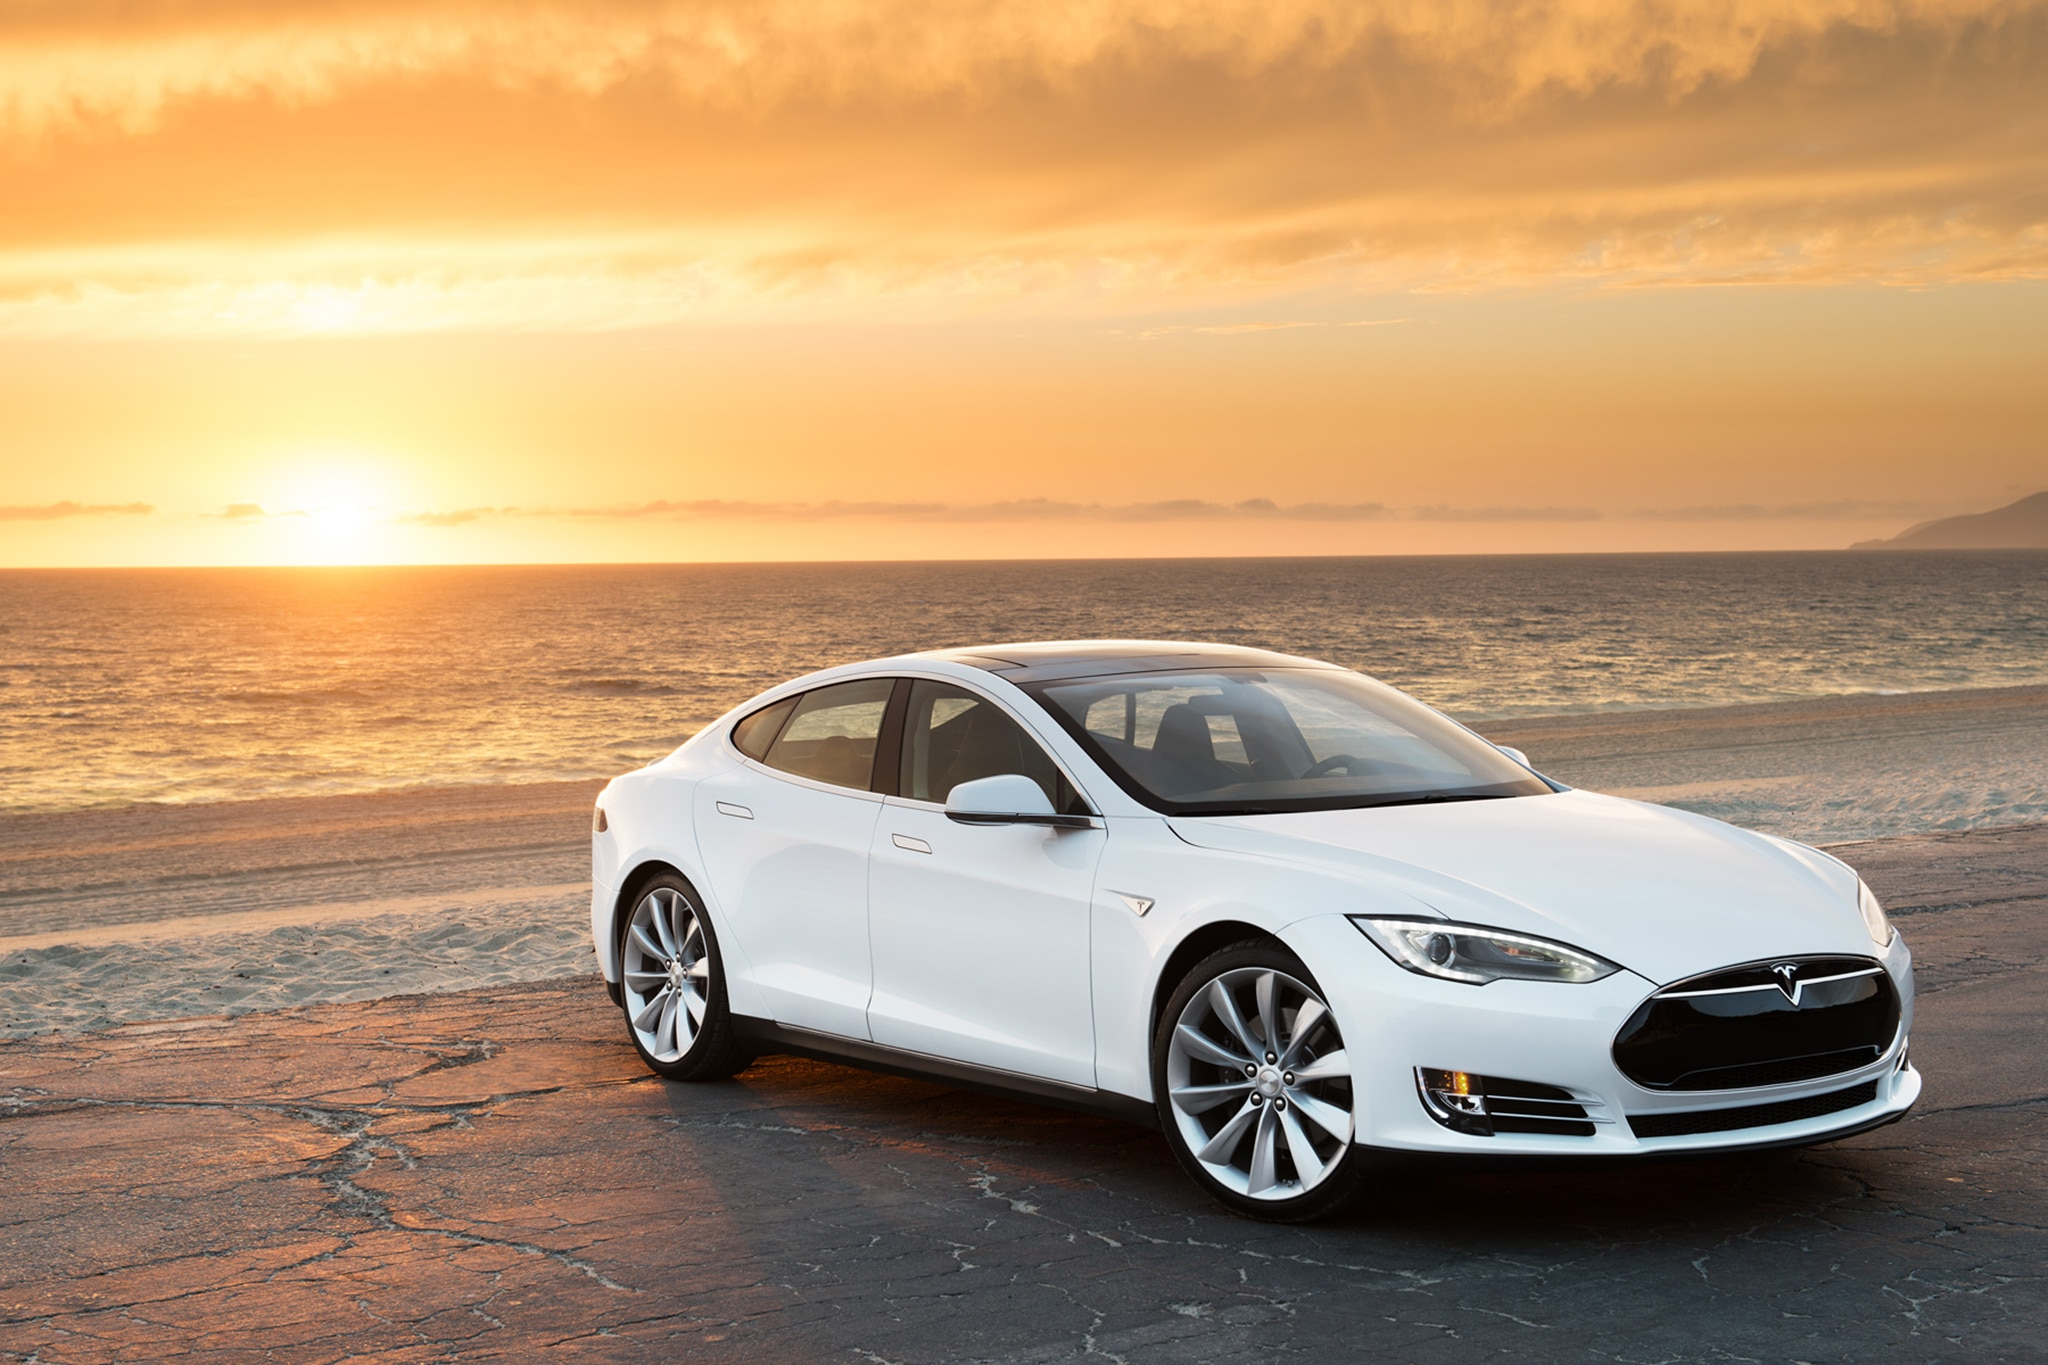 2014 Tesla Model S Front View Sunset